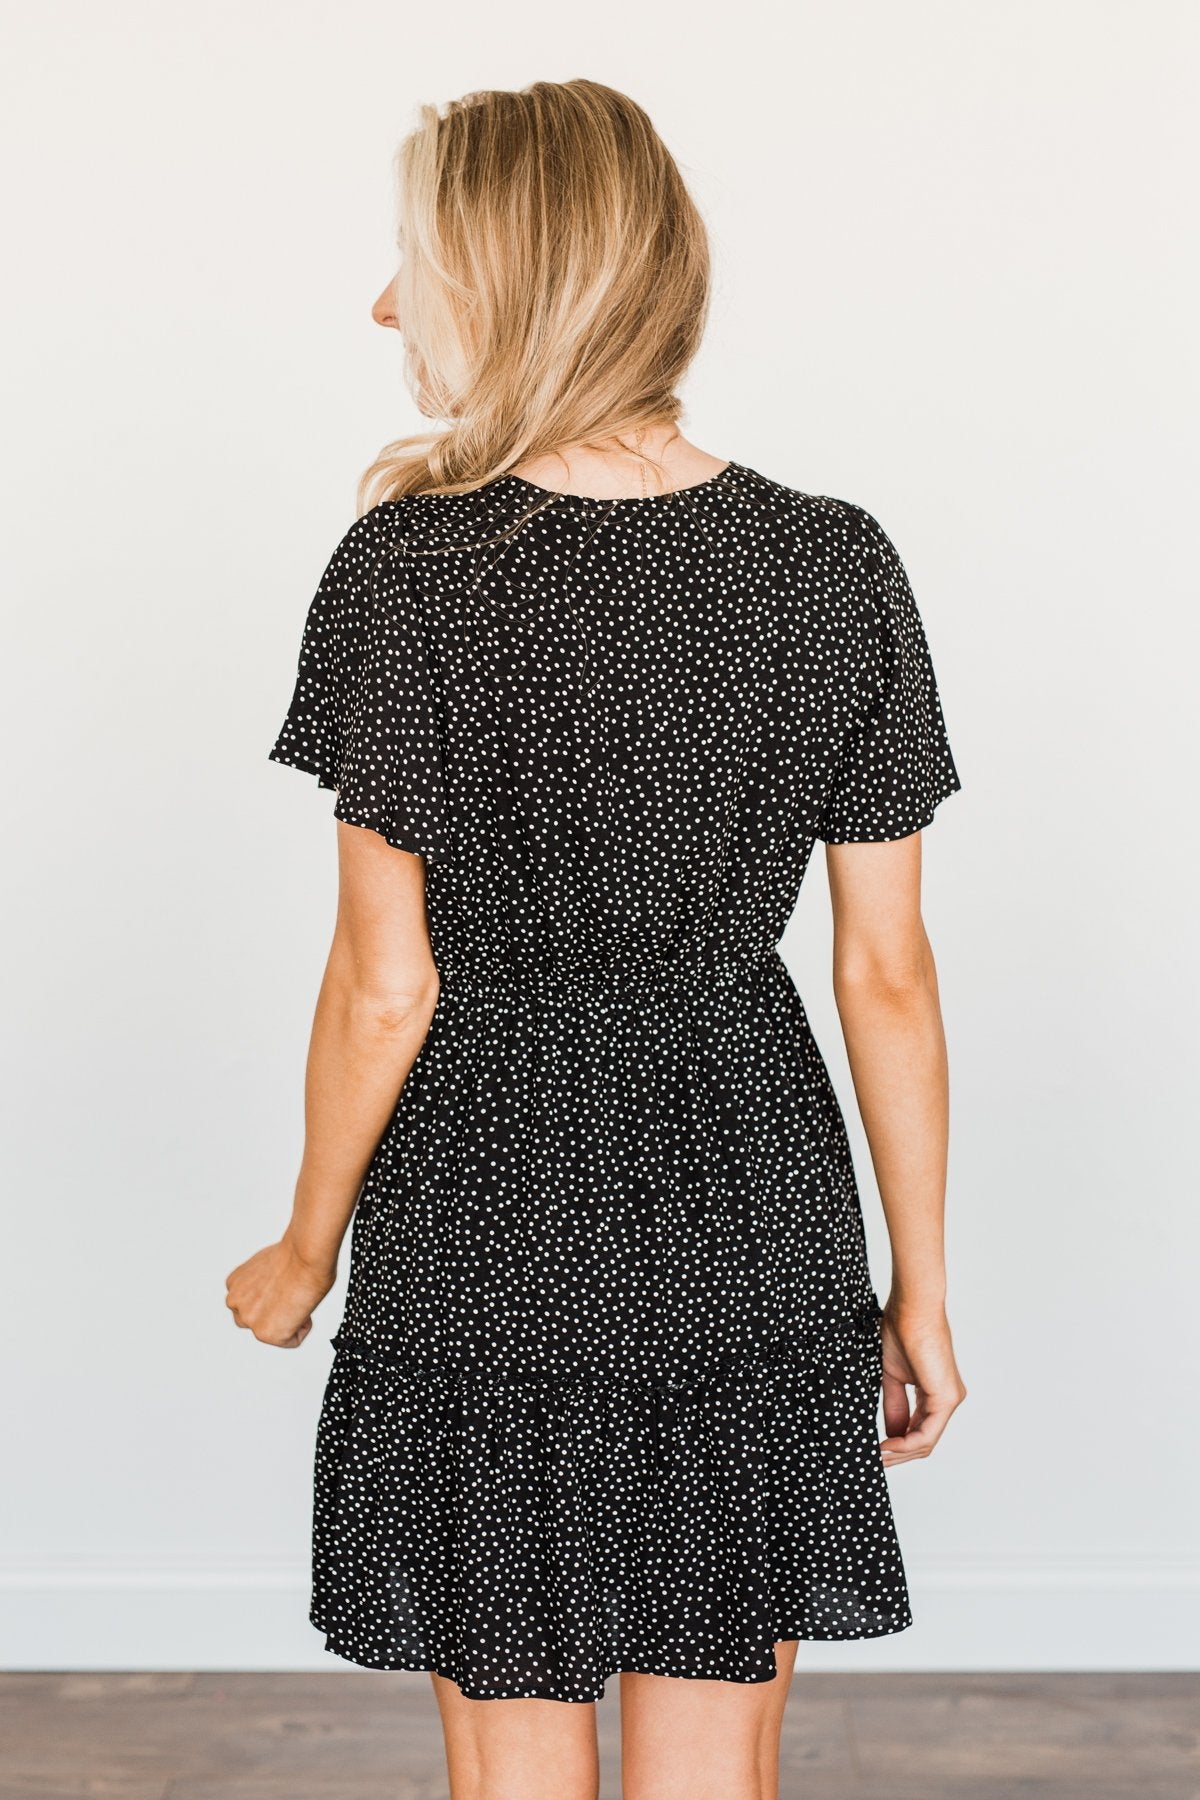 Meant For Me Spotted Dress- Black